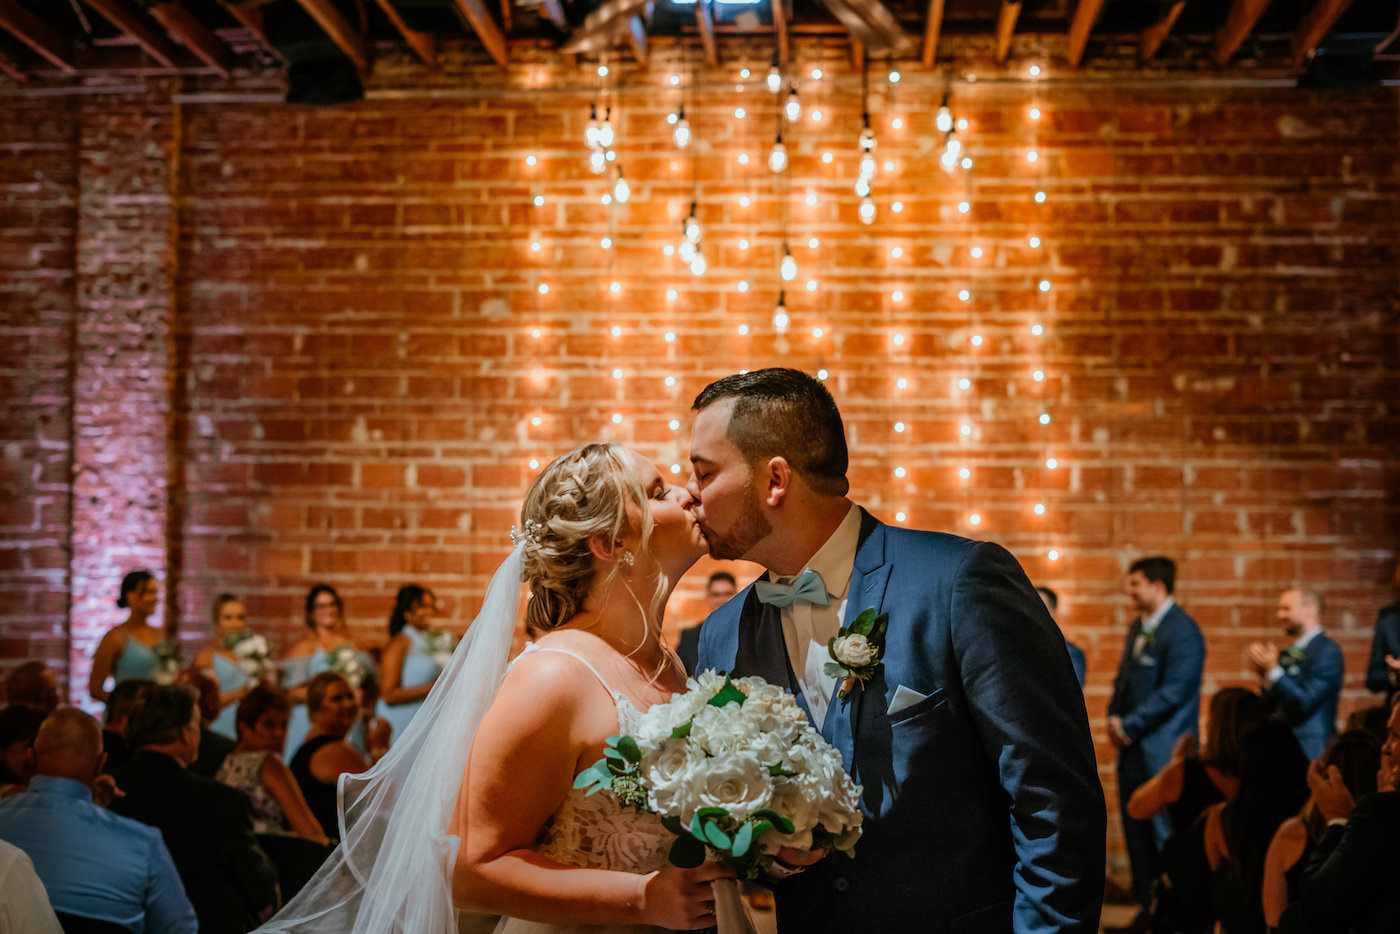 Downtown St. Pete Bride and Groom Intimate Kiss in Indoor Summer Wedding Ceremony, Exposed Red Brick Wall with String Lighting   Tampa Bay Unique Wedding Venue NOVA 535   Florida Wedding Photographer Bonnie Newman Creative   Wedding Hair and Makeup Artist Femme Akoi Beauty Studio